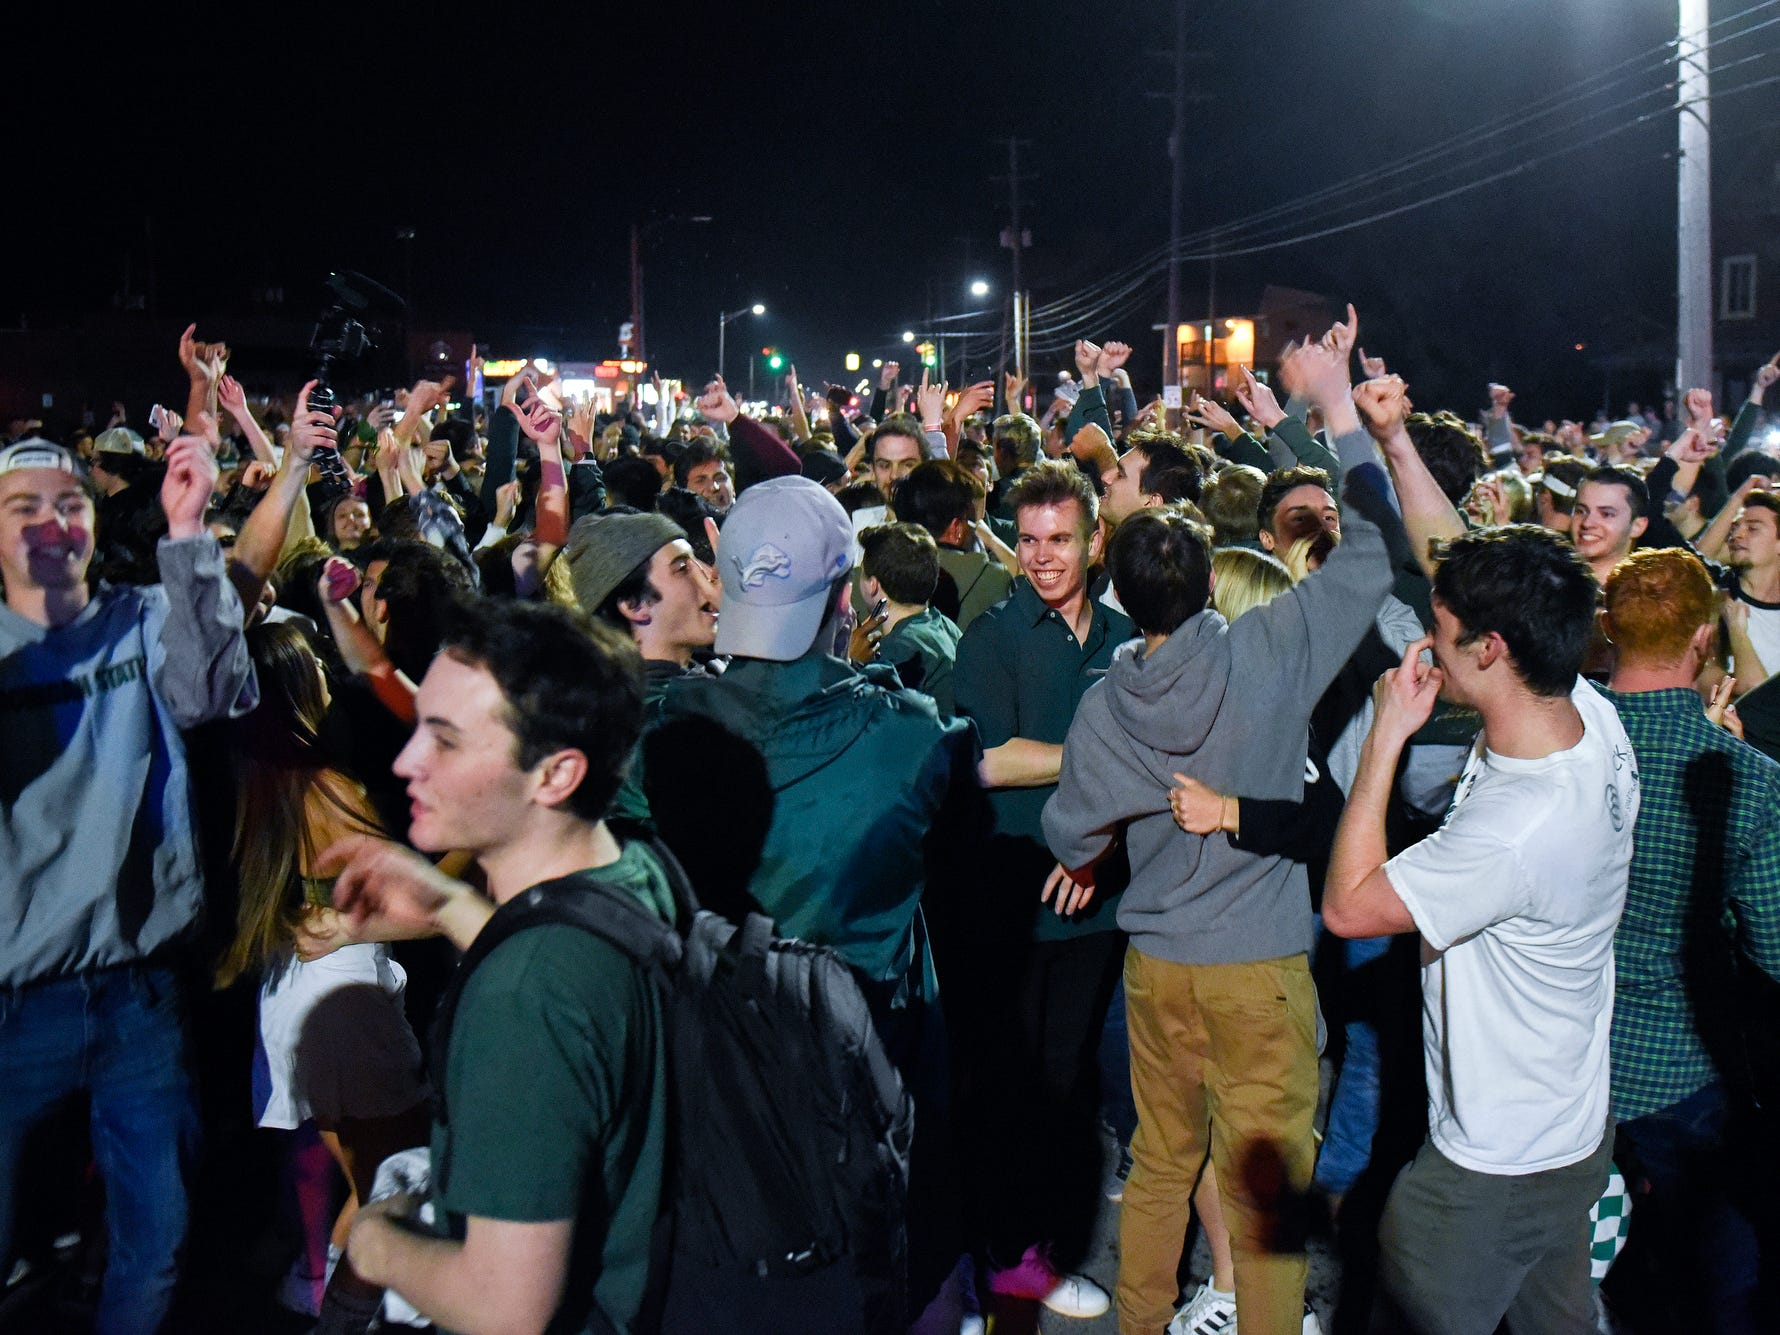 A group of people block Grand River Avenue near the Woodmere Avenue intersection after the Michigan State Spartans' Final Four loss to Texas Tech on Saturday, April 6, 2019, on in East Lansing.